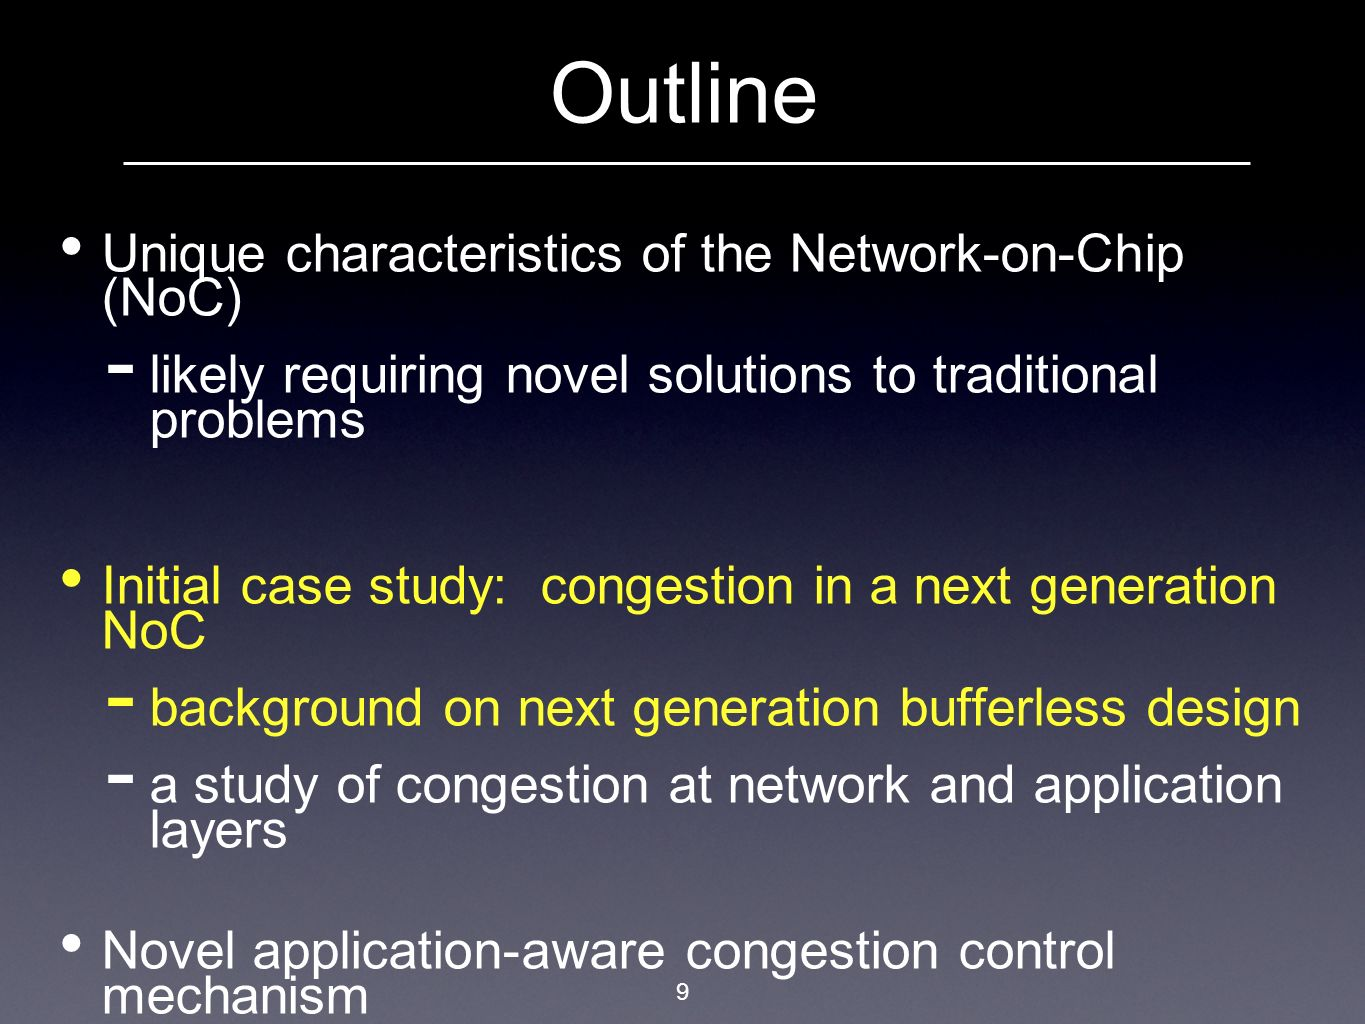 Outline Unique characteristics of the Network-on-Chip (NoC)